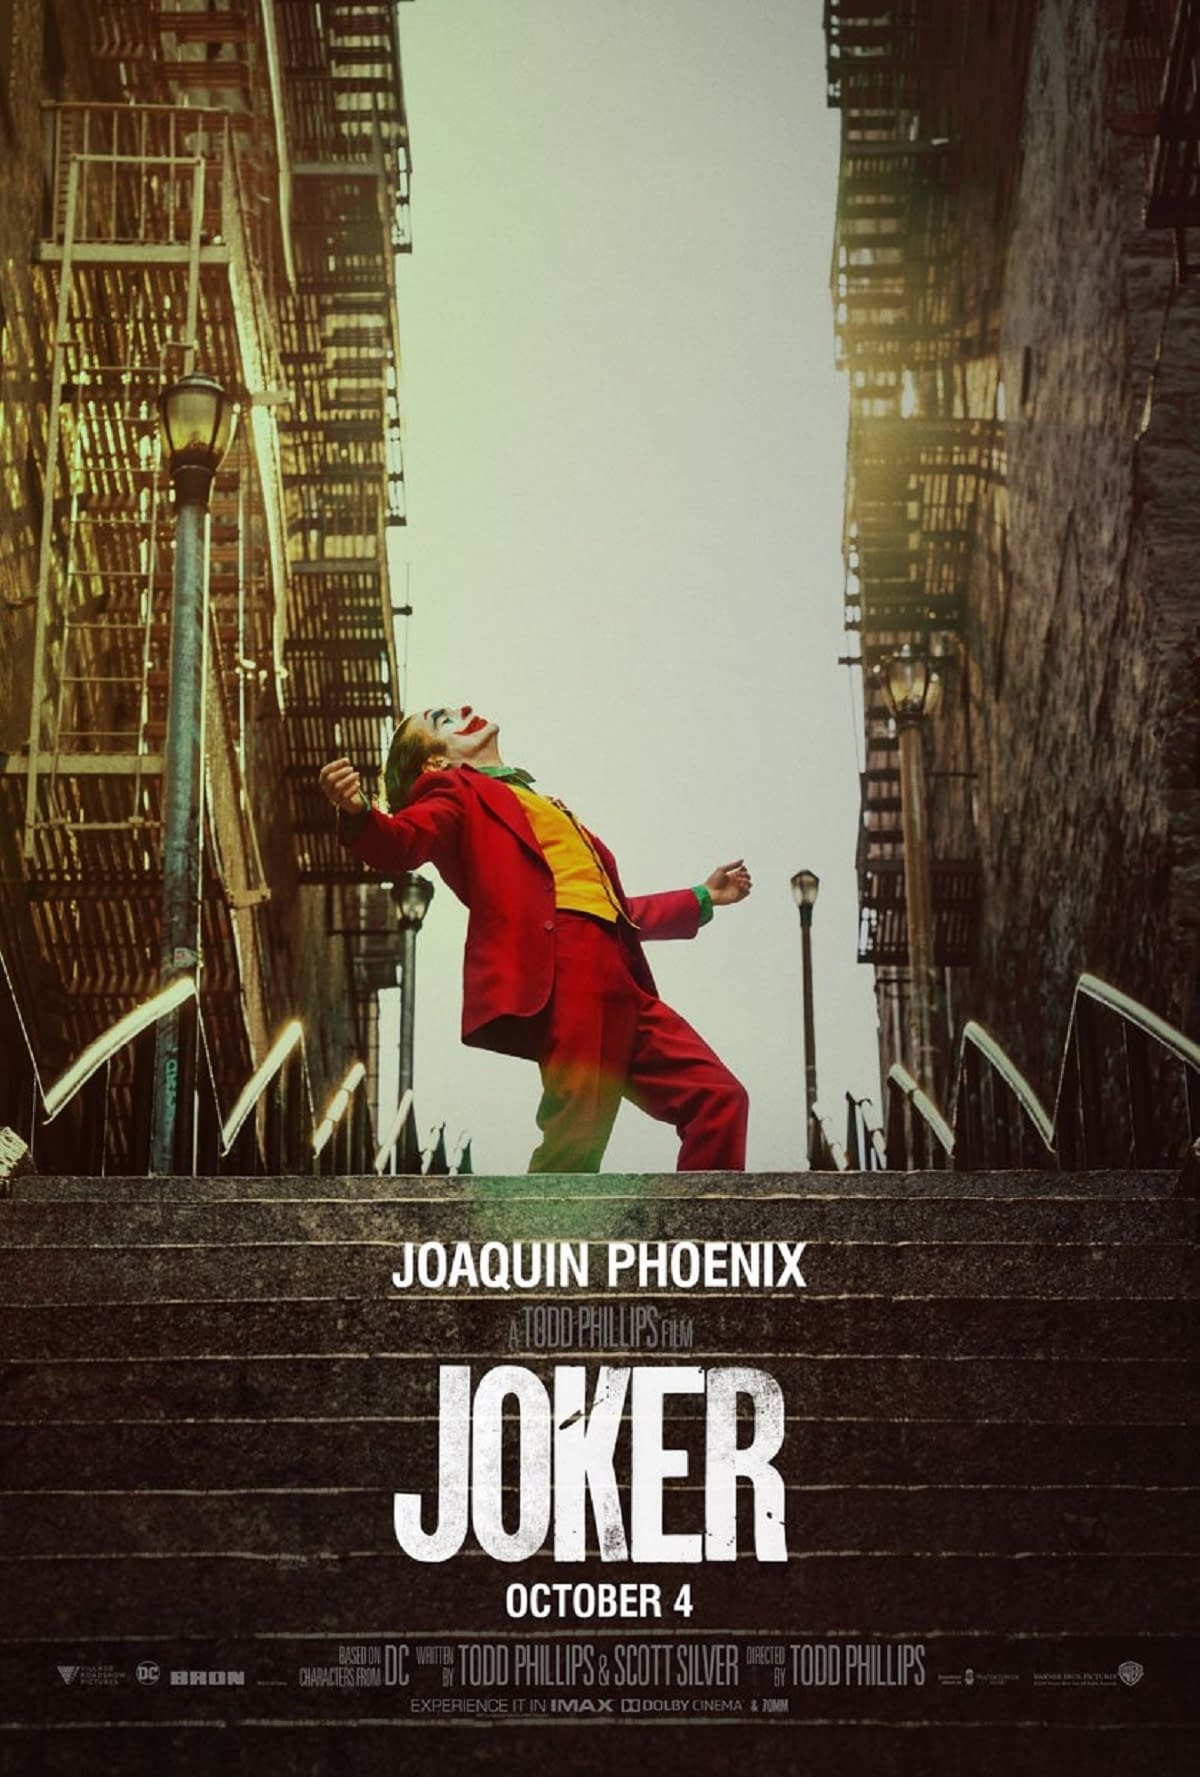 """""""Joker"""" OG Cesar Romero: The Clown Prince of Crime Lets Him Be """"Hammy"""" and """"Go All Out"""" [VIDEO]"""